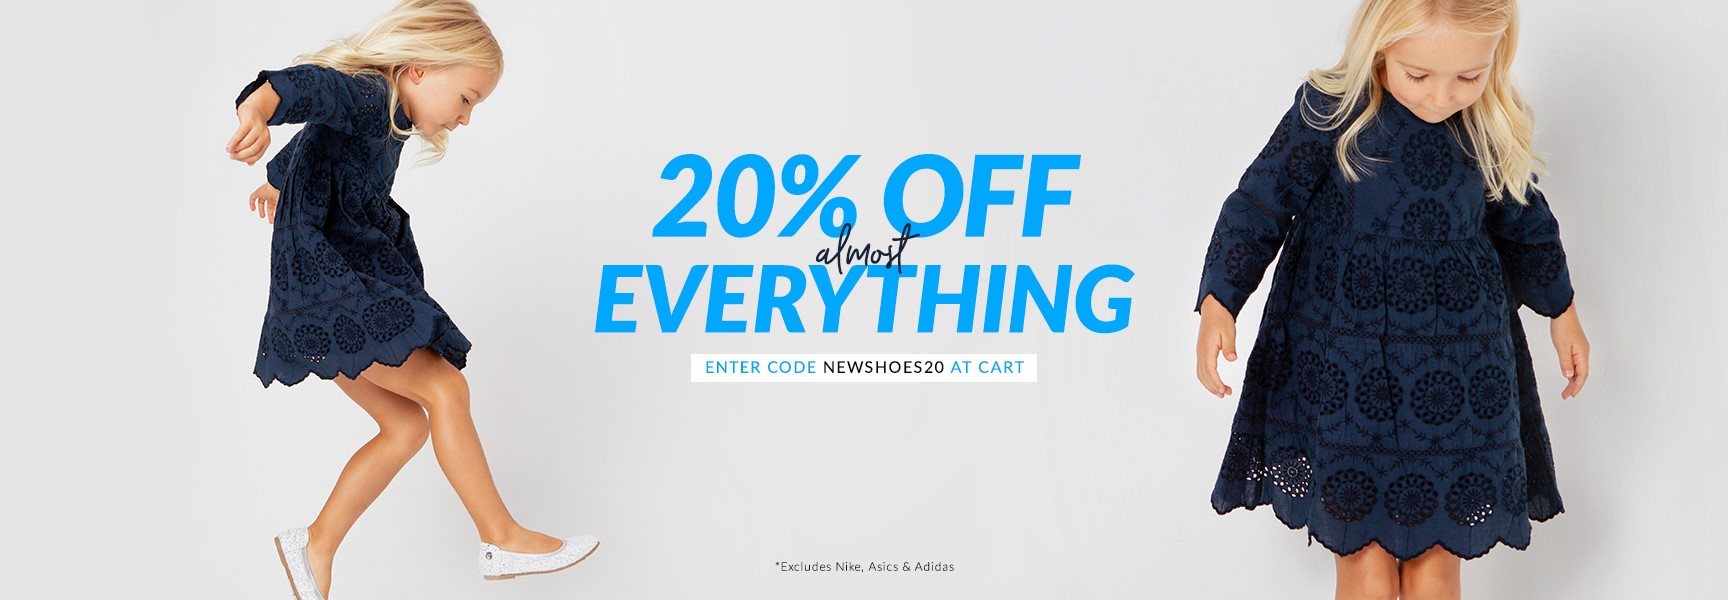 20off_almost_everything_desktop